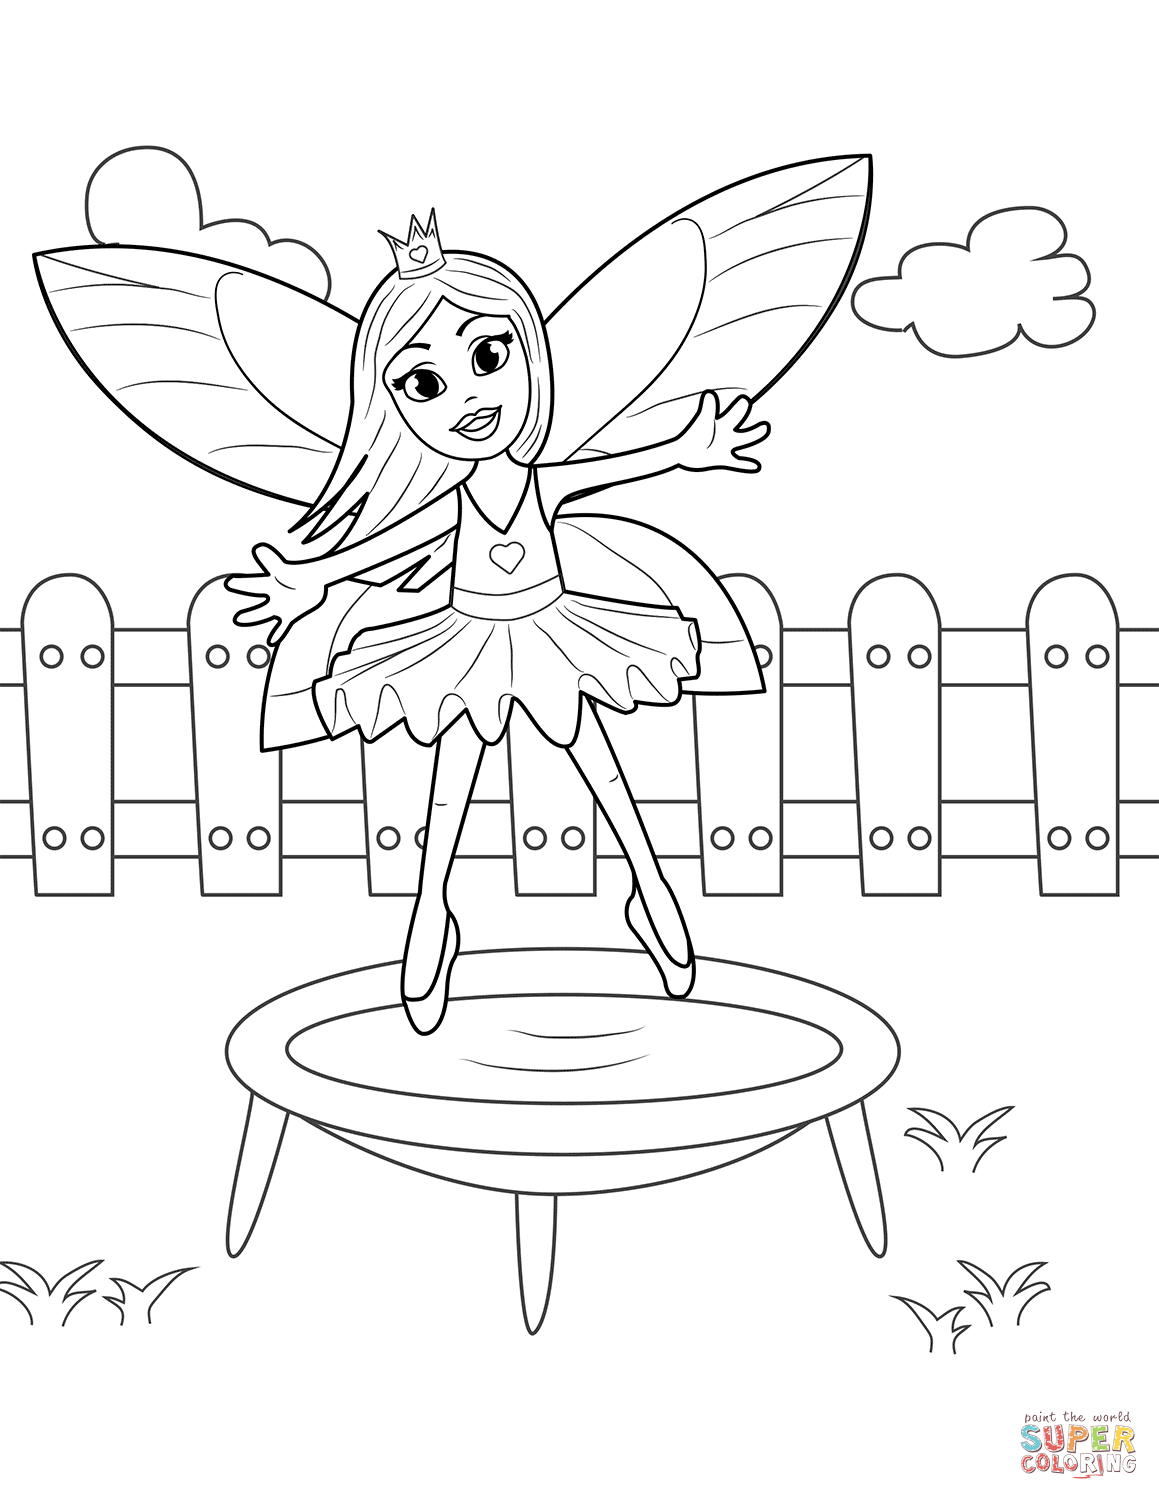 Fairy Jumping On Trampoline Coloring Page